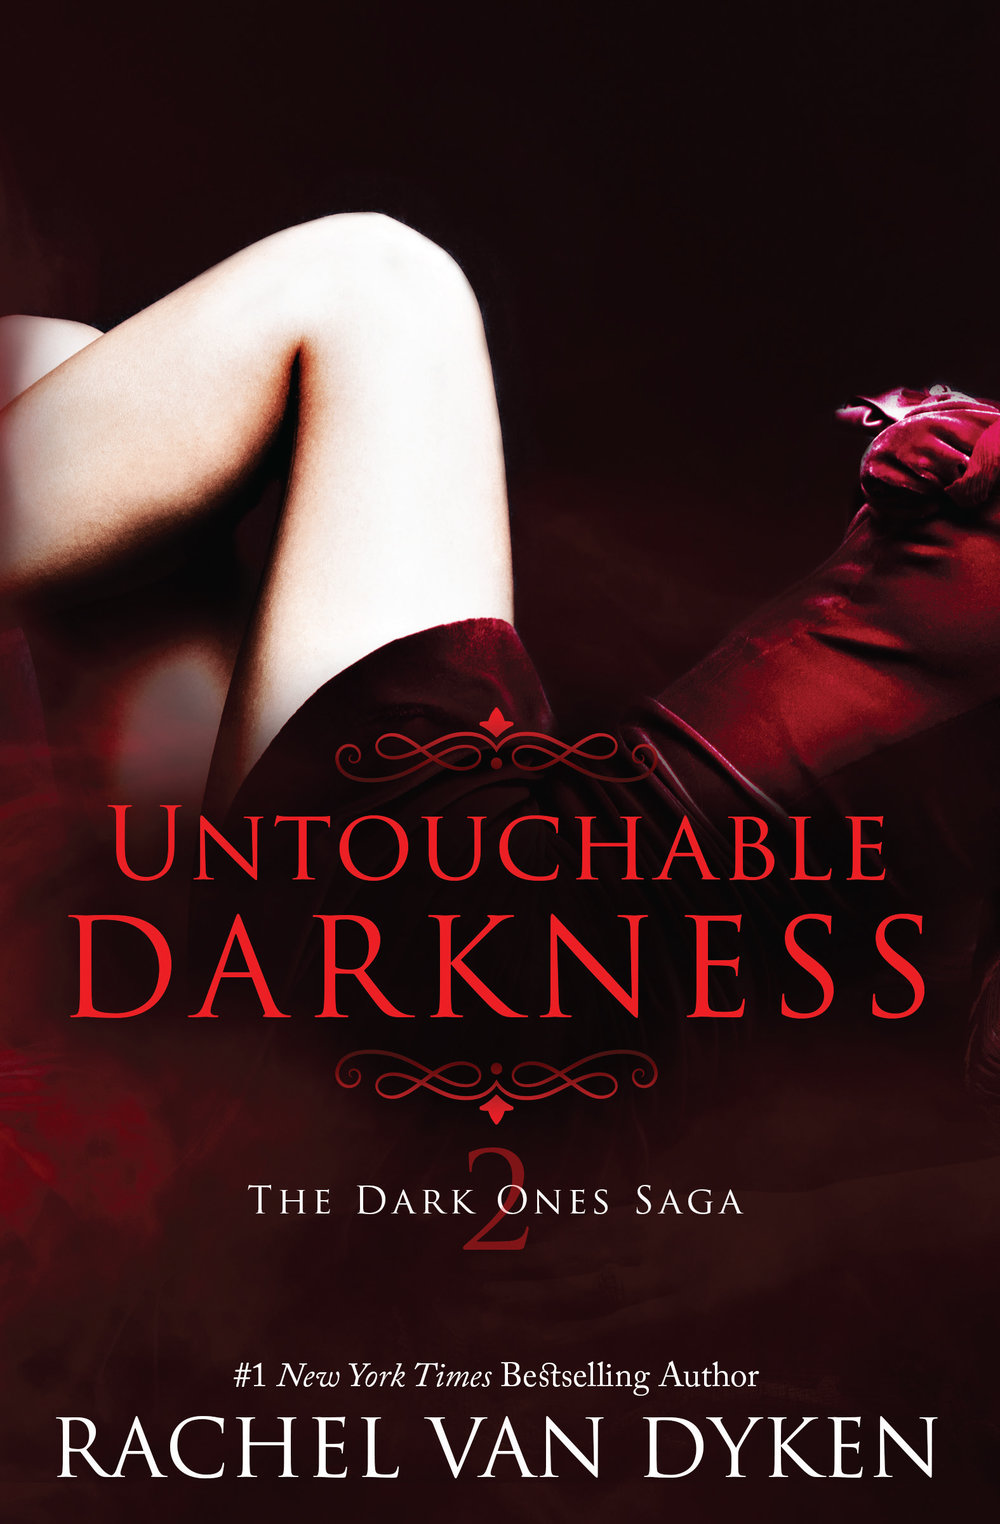 Rachel Van Dyken The Dark Ones Saga Untouchable Darkness.jpeg